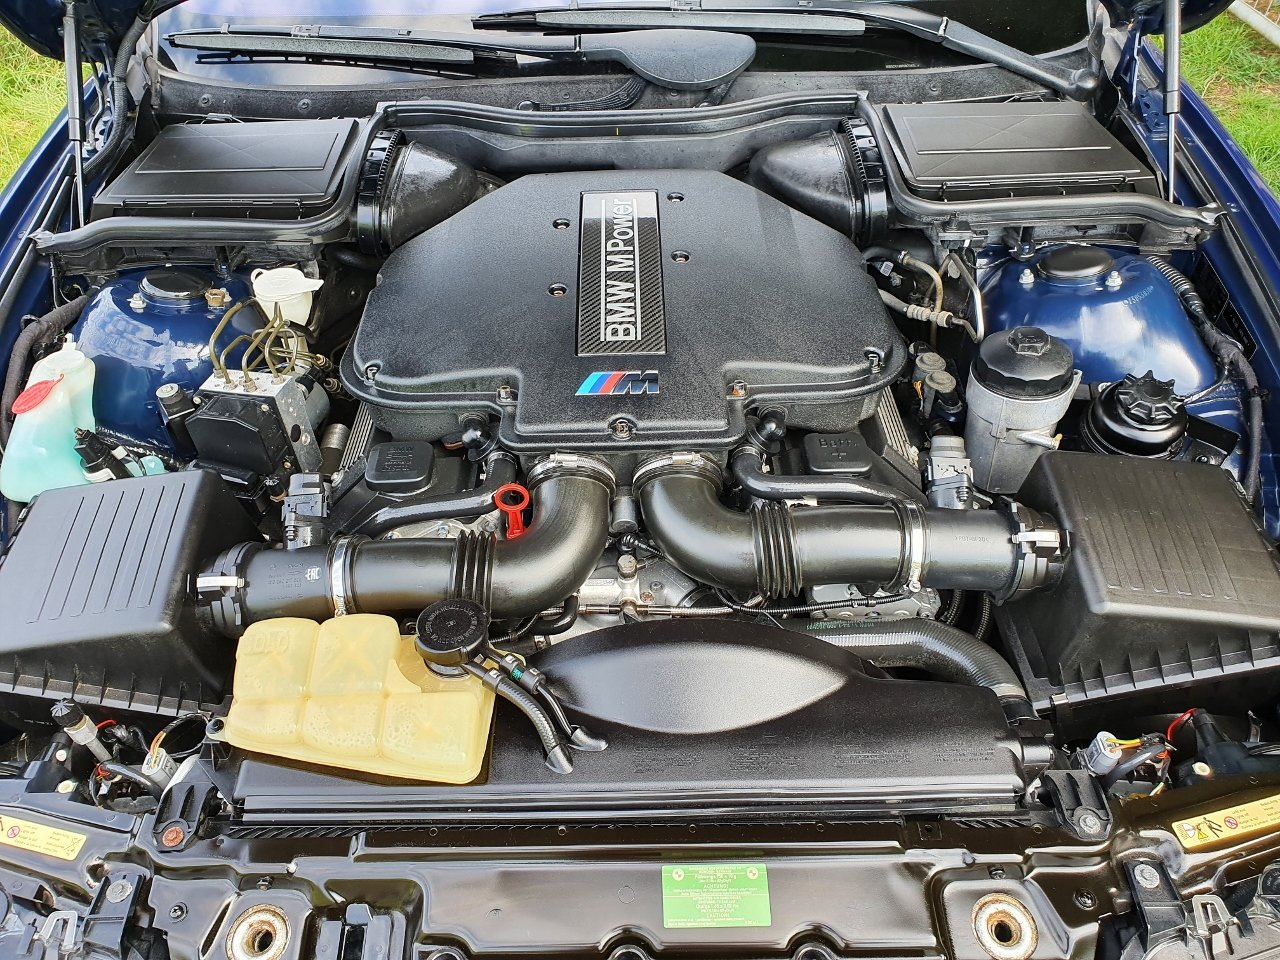 2001 Only 44,000 Miles - Le Mans Blue E39 M5 - Full History SOLD (picture 10 of 10)